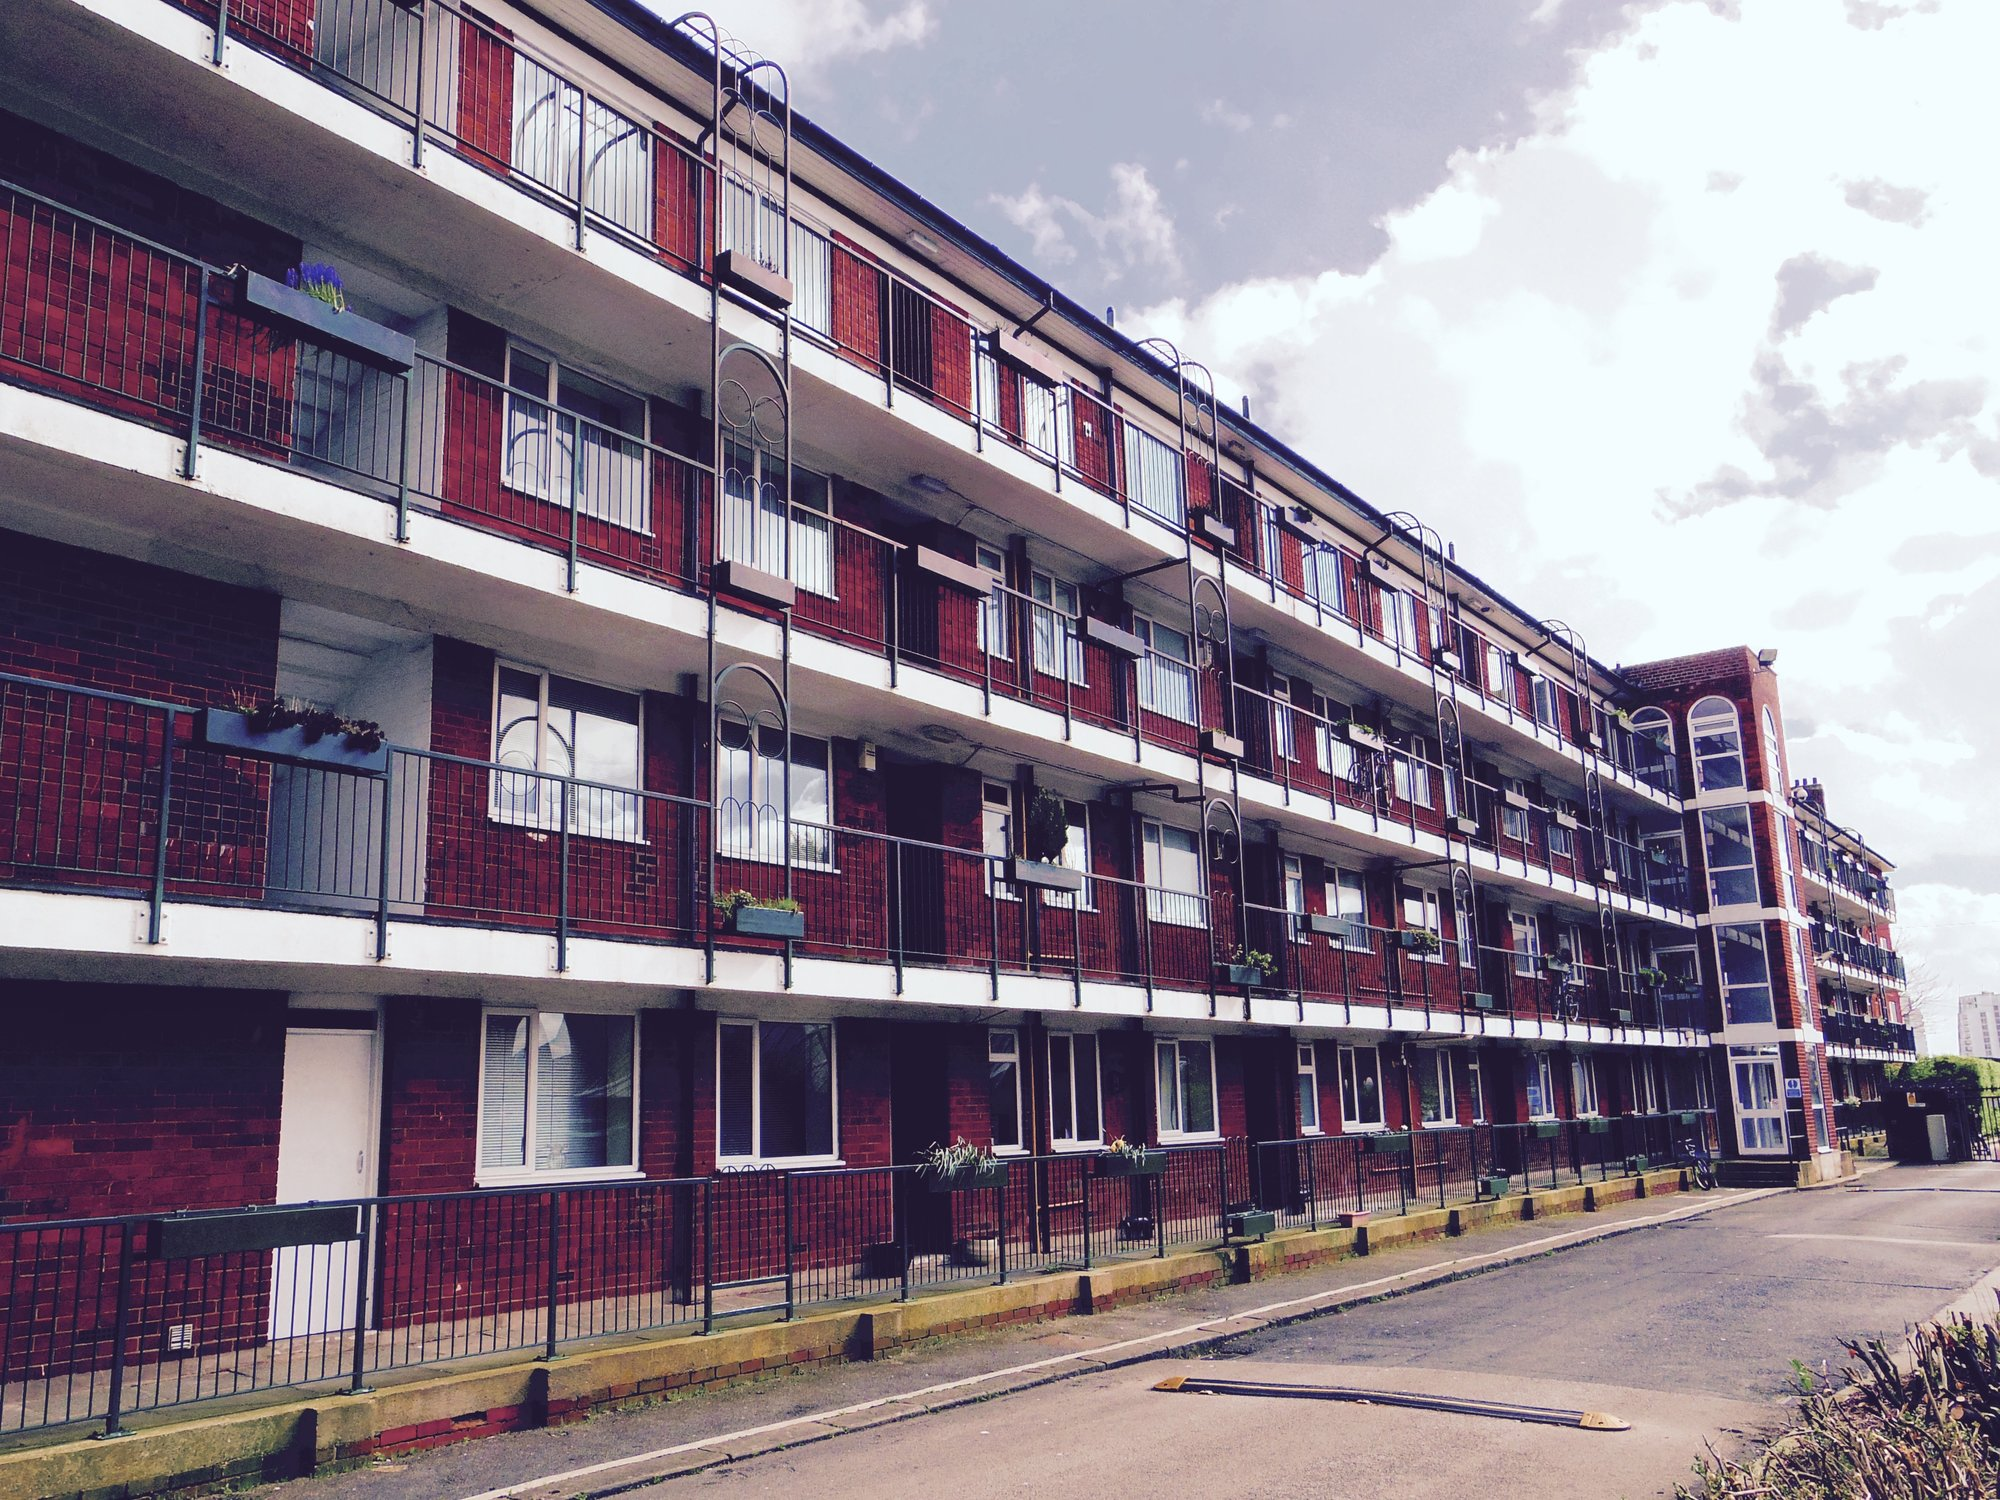 675 Credit Score >> 2 Bed Apartment to Rent - Eccles New Road, Salford, M5 4UL